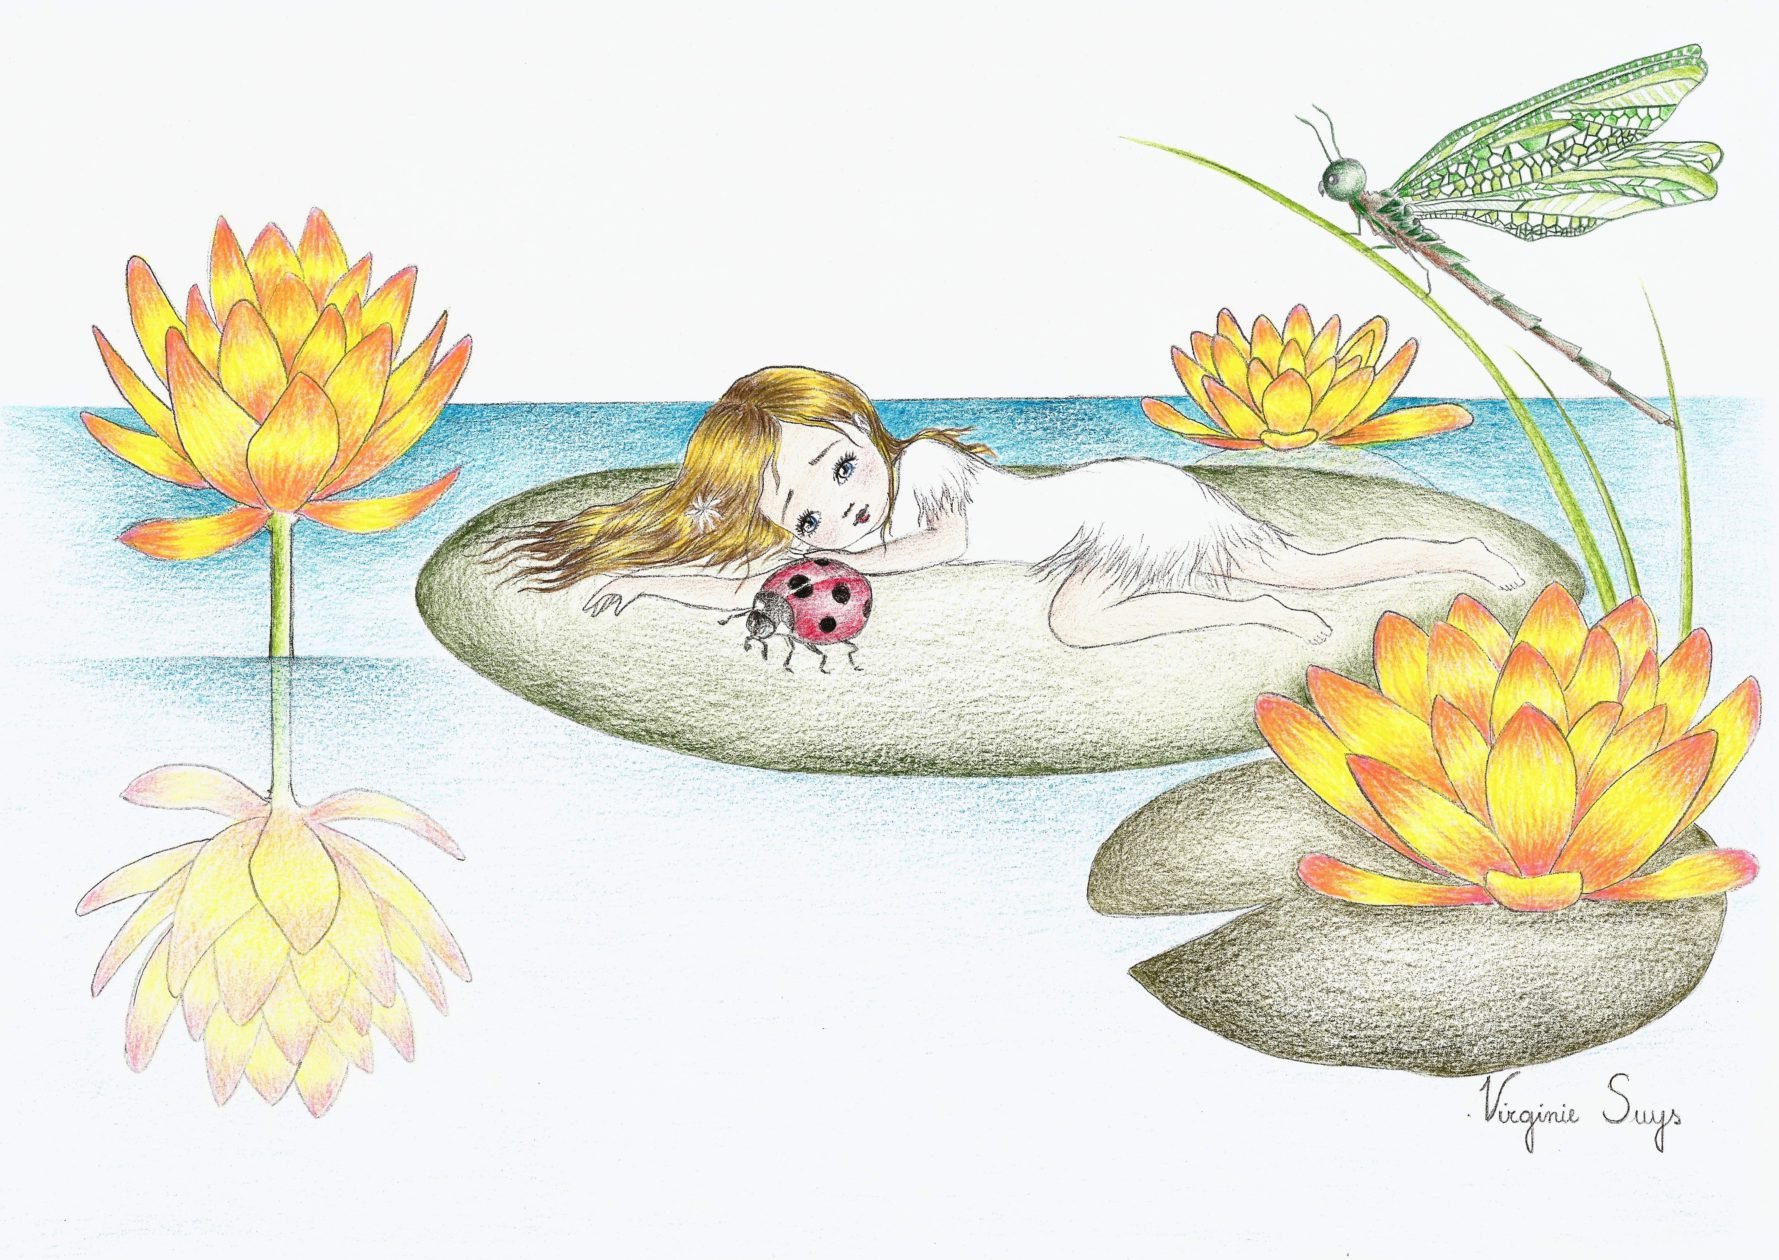 Thumbelina by the waterlillys in dark green illustration